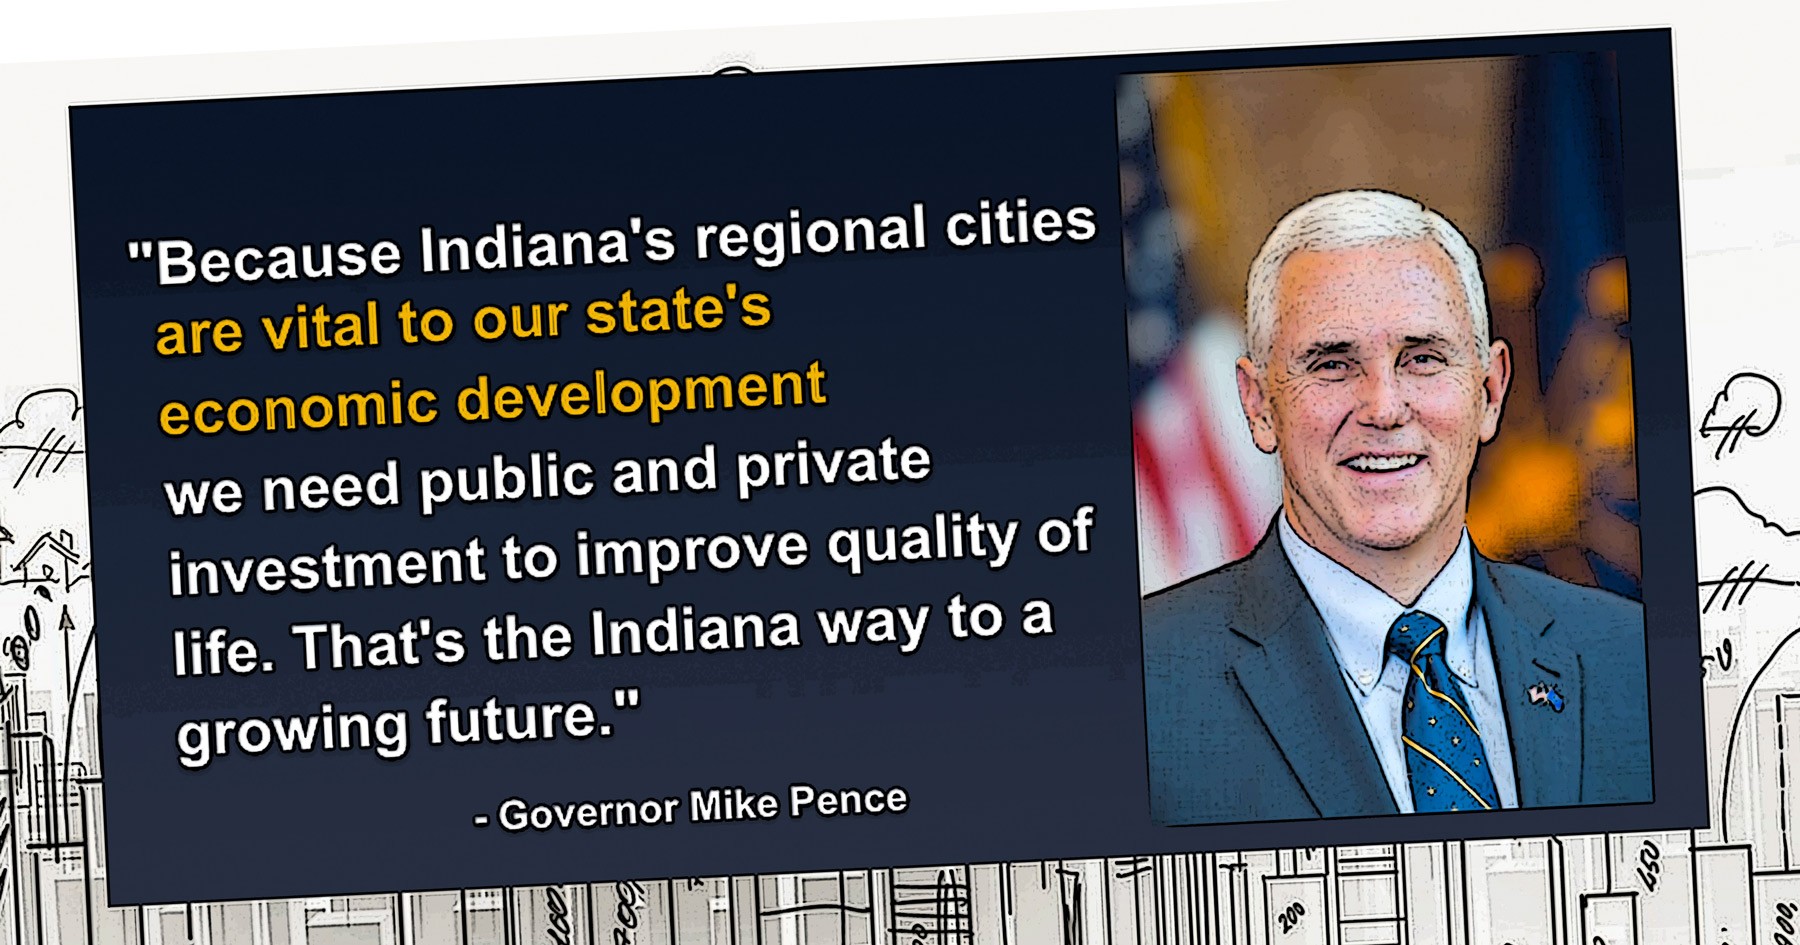 Indiana, pork, Mike Pence, Regional Cities initiative, Common Sense, illustration